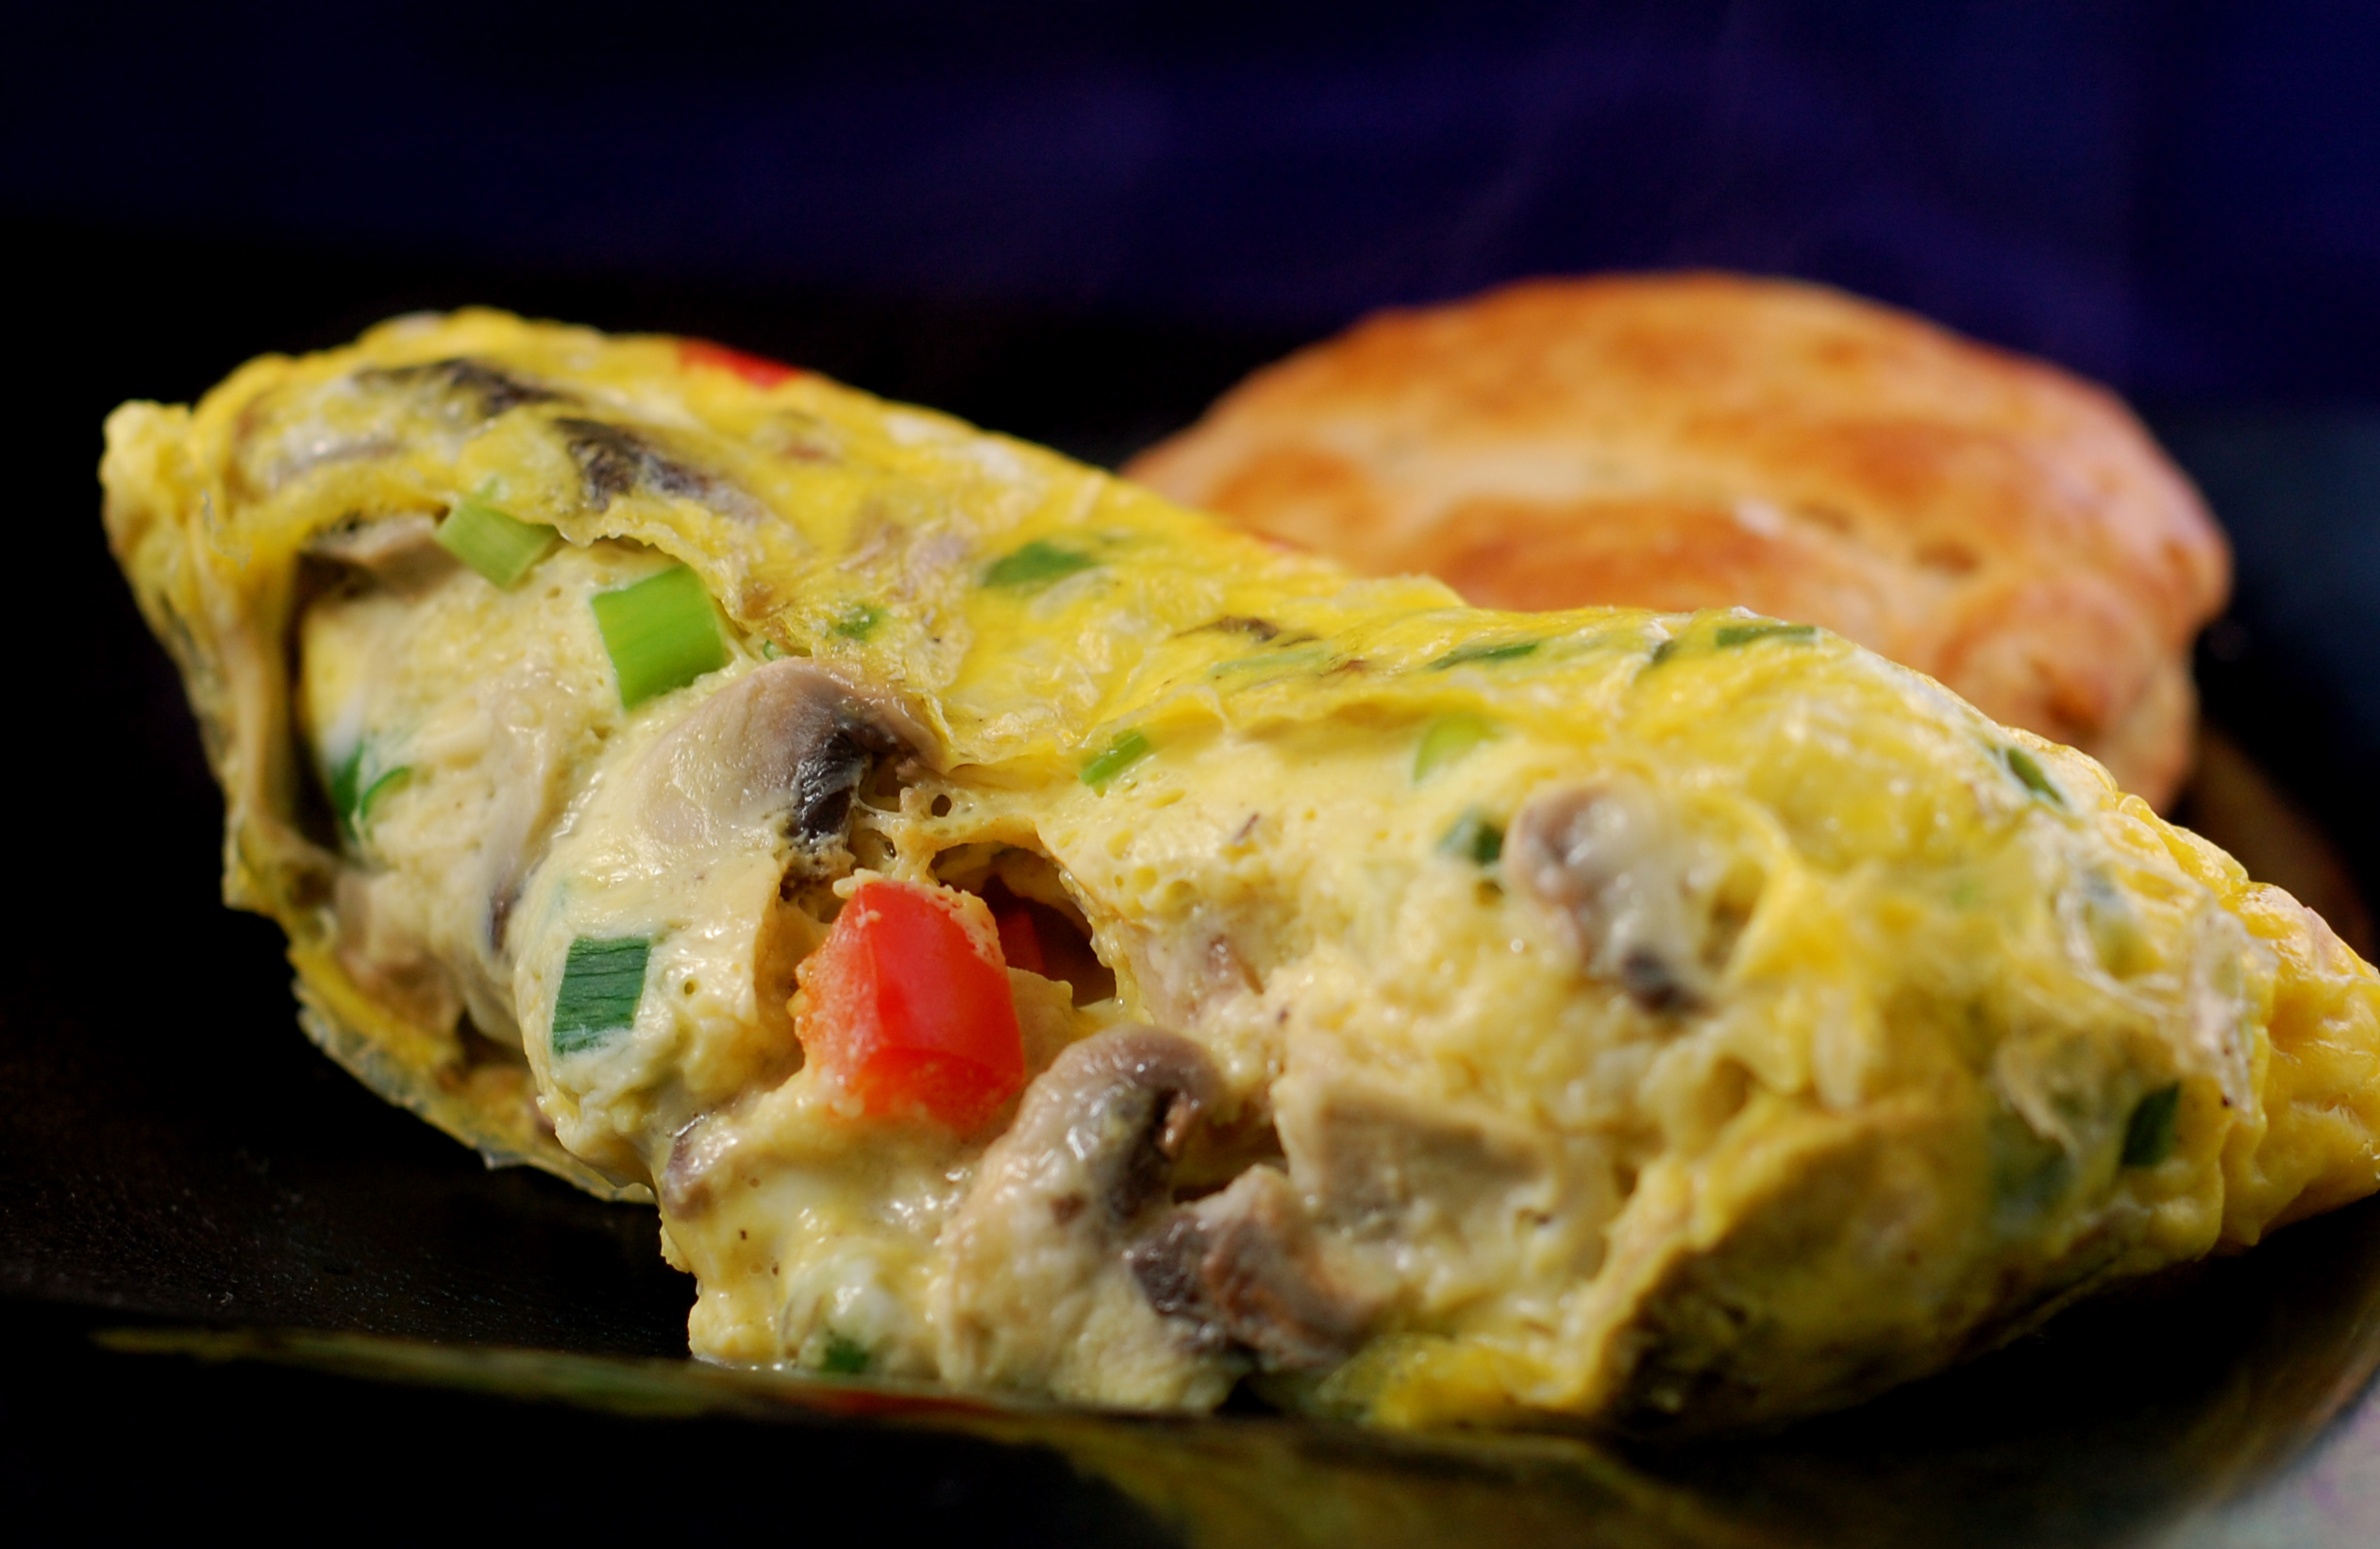 biscuit & omelet